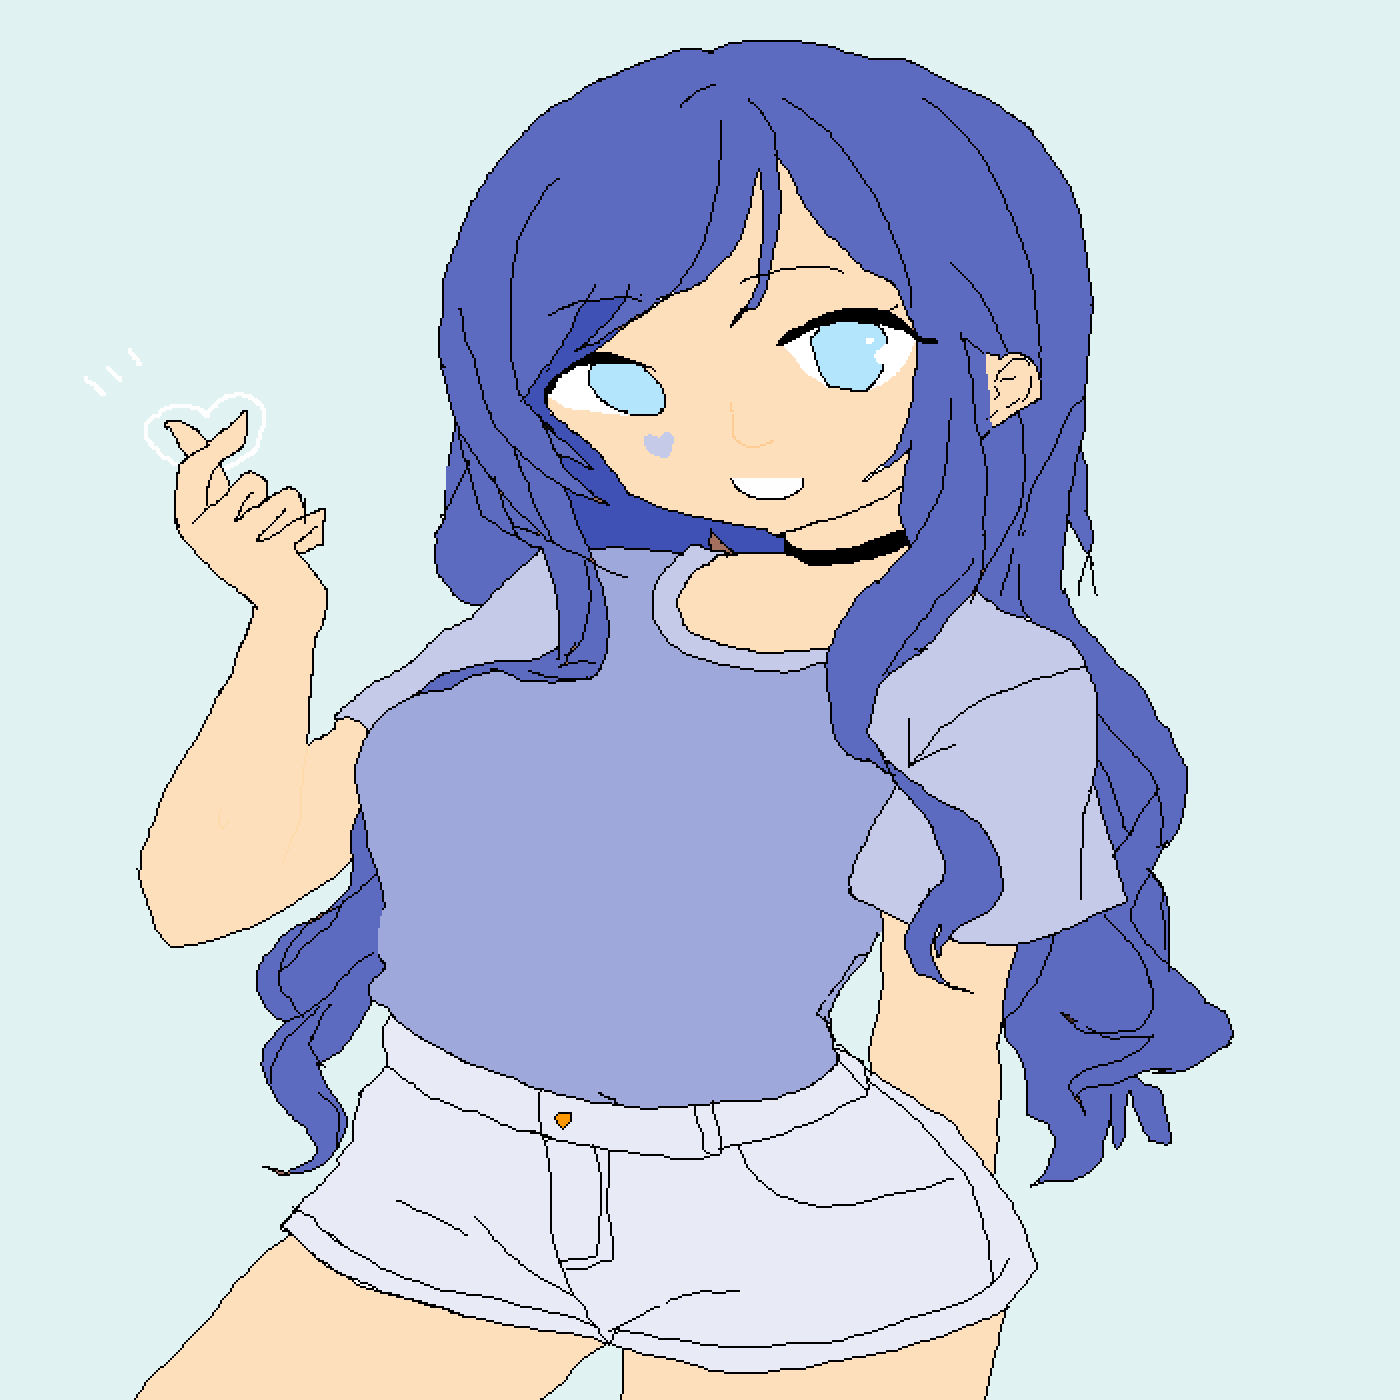 My Other OC Periwinkle